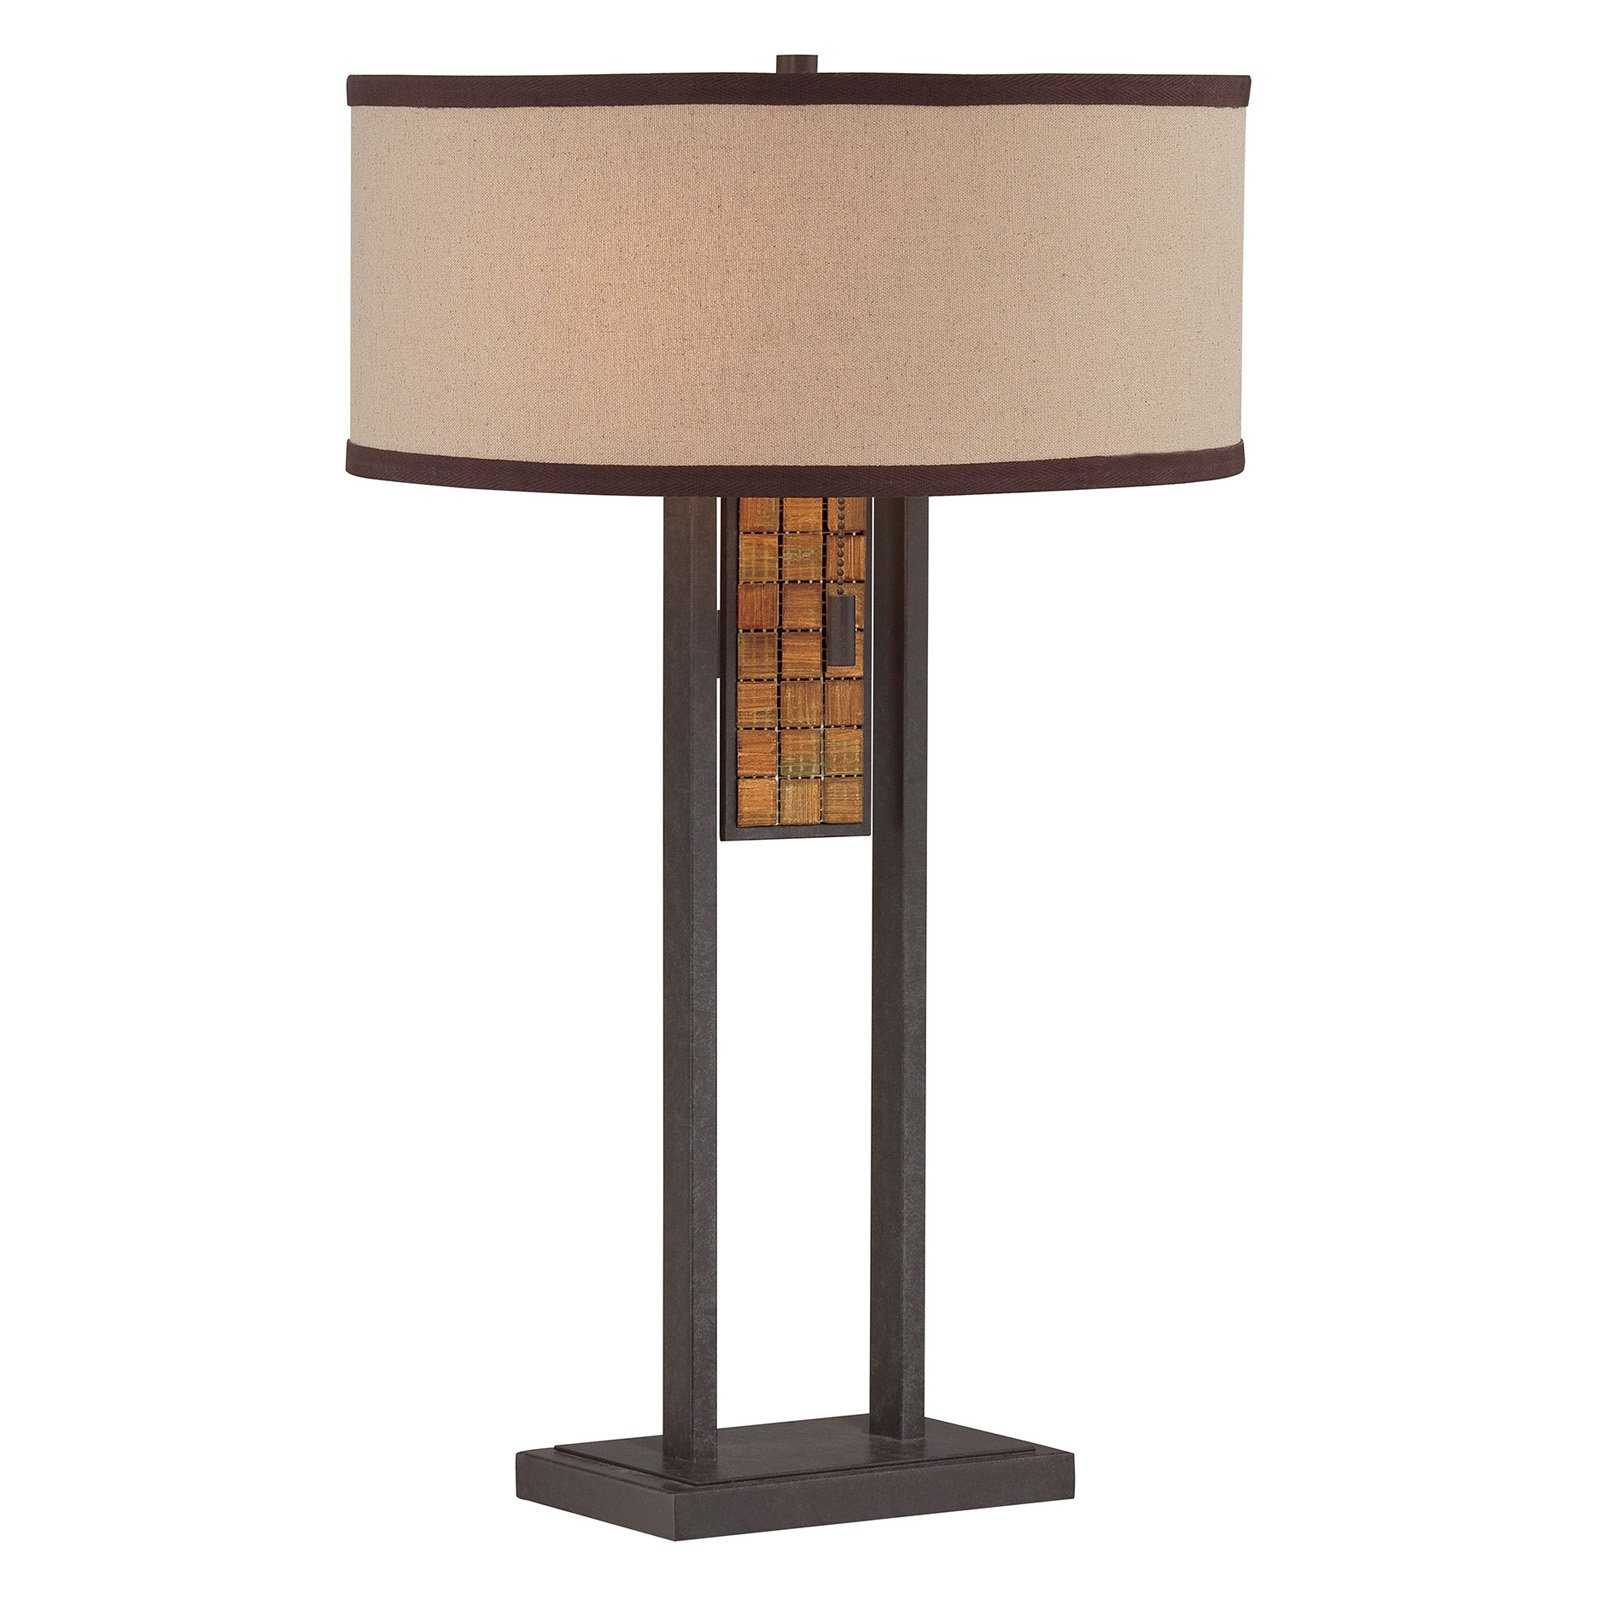 Lite Source Marquetta 2-Light Table Lamp, Aged Bronze Finish with Mosaic Accent and Beige Fabric Shade with Brown Trim